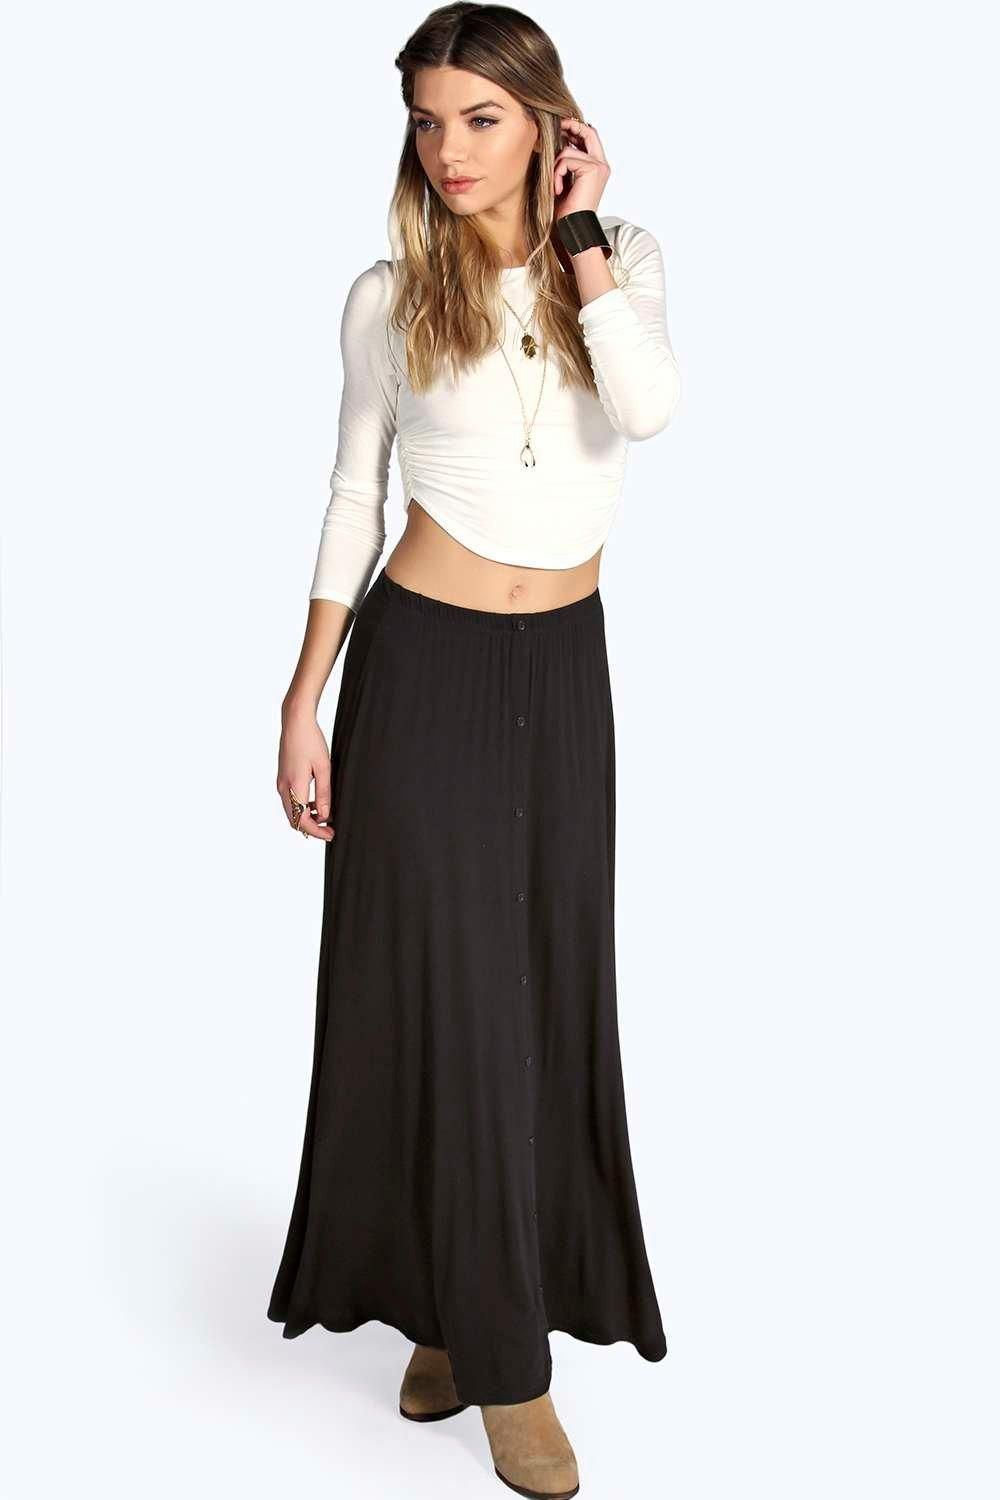 How to maxi a wear skirt zoella